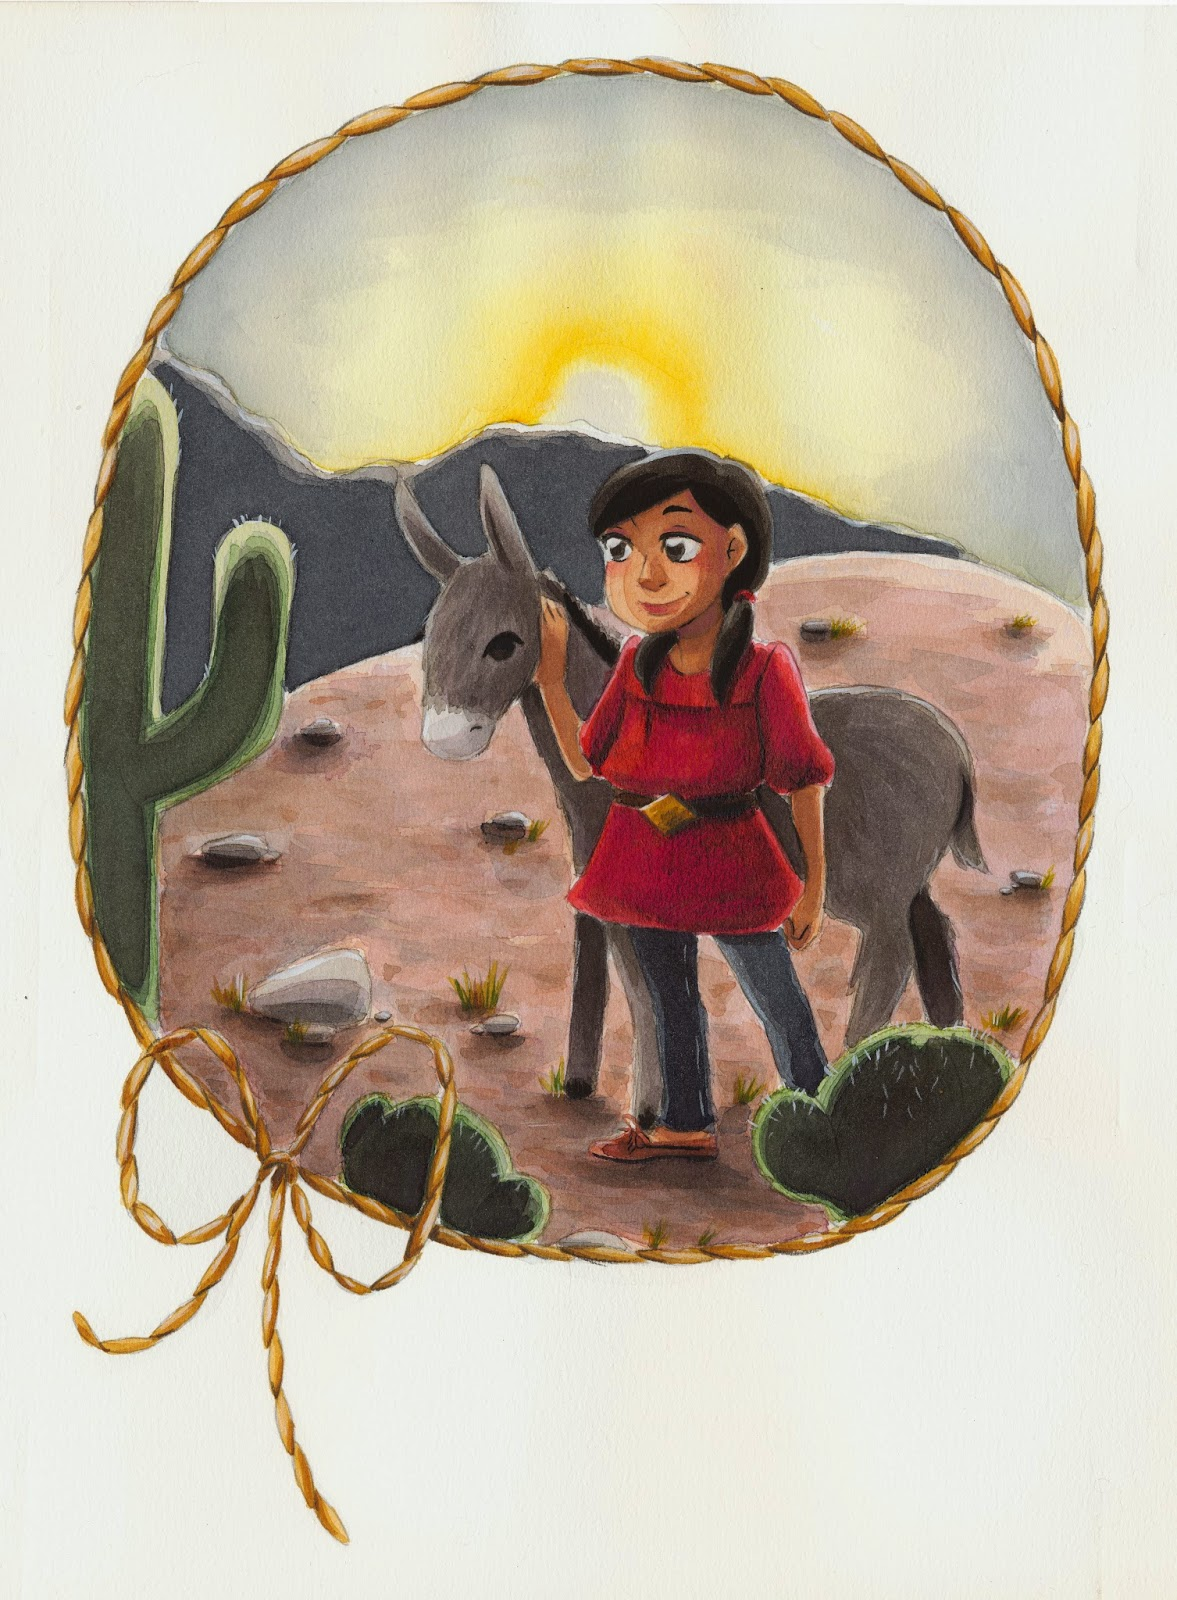 watercolor, Nattosoup Studio, burro, desert, painting, illustration